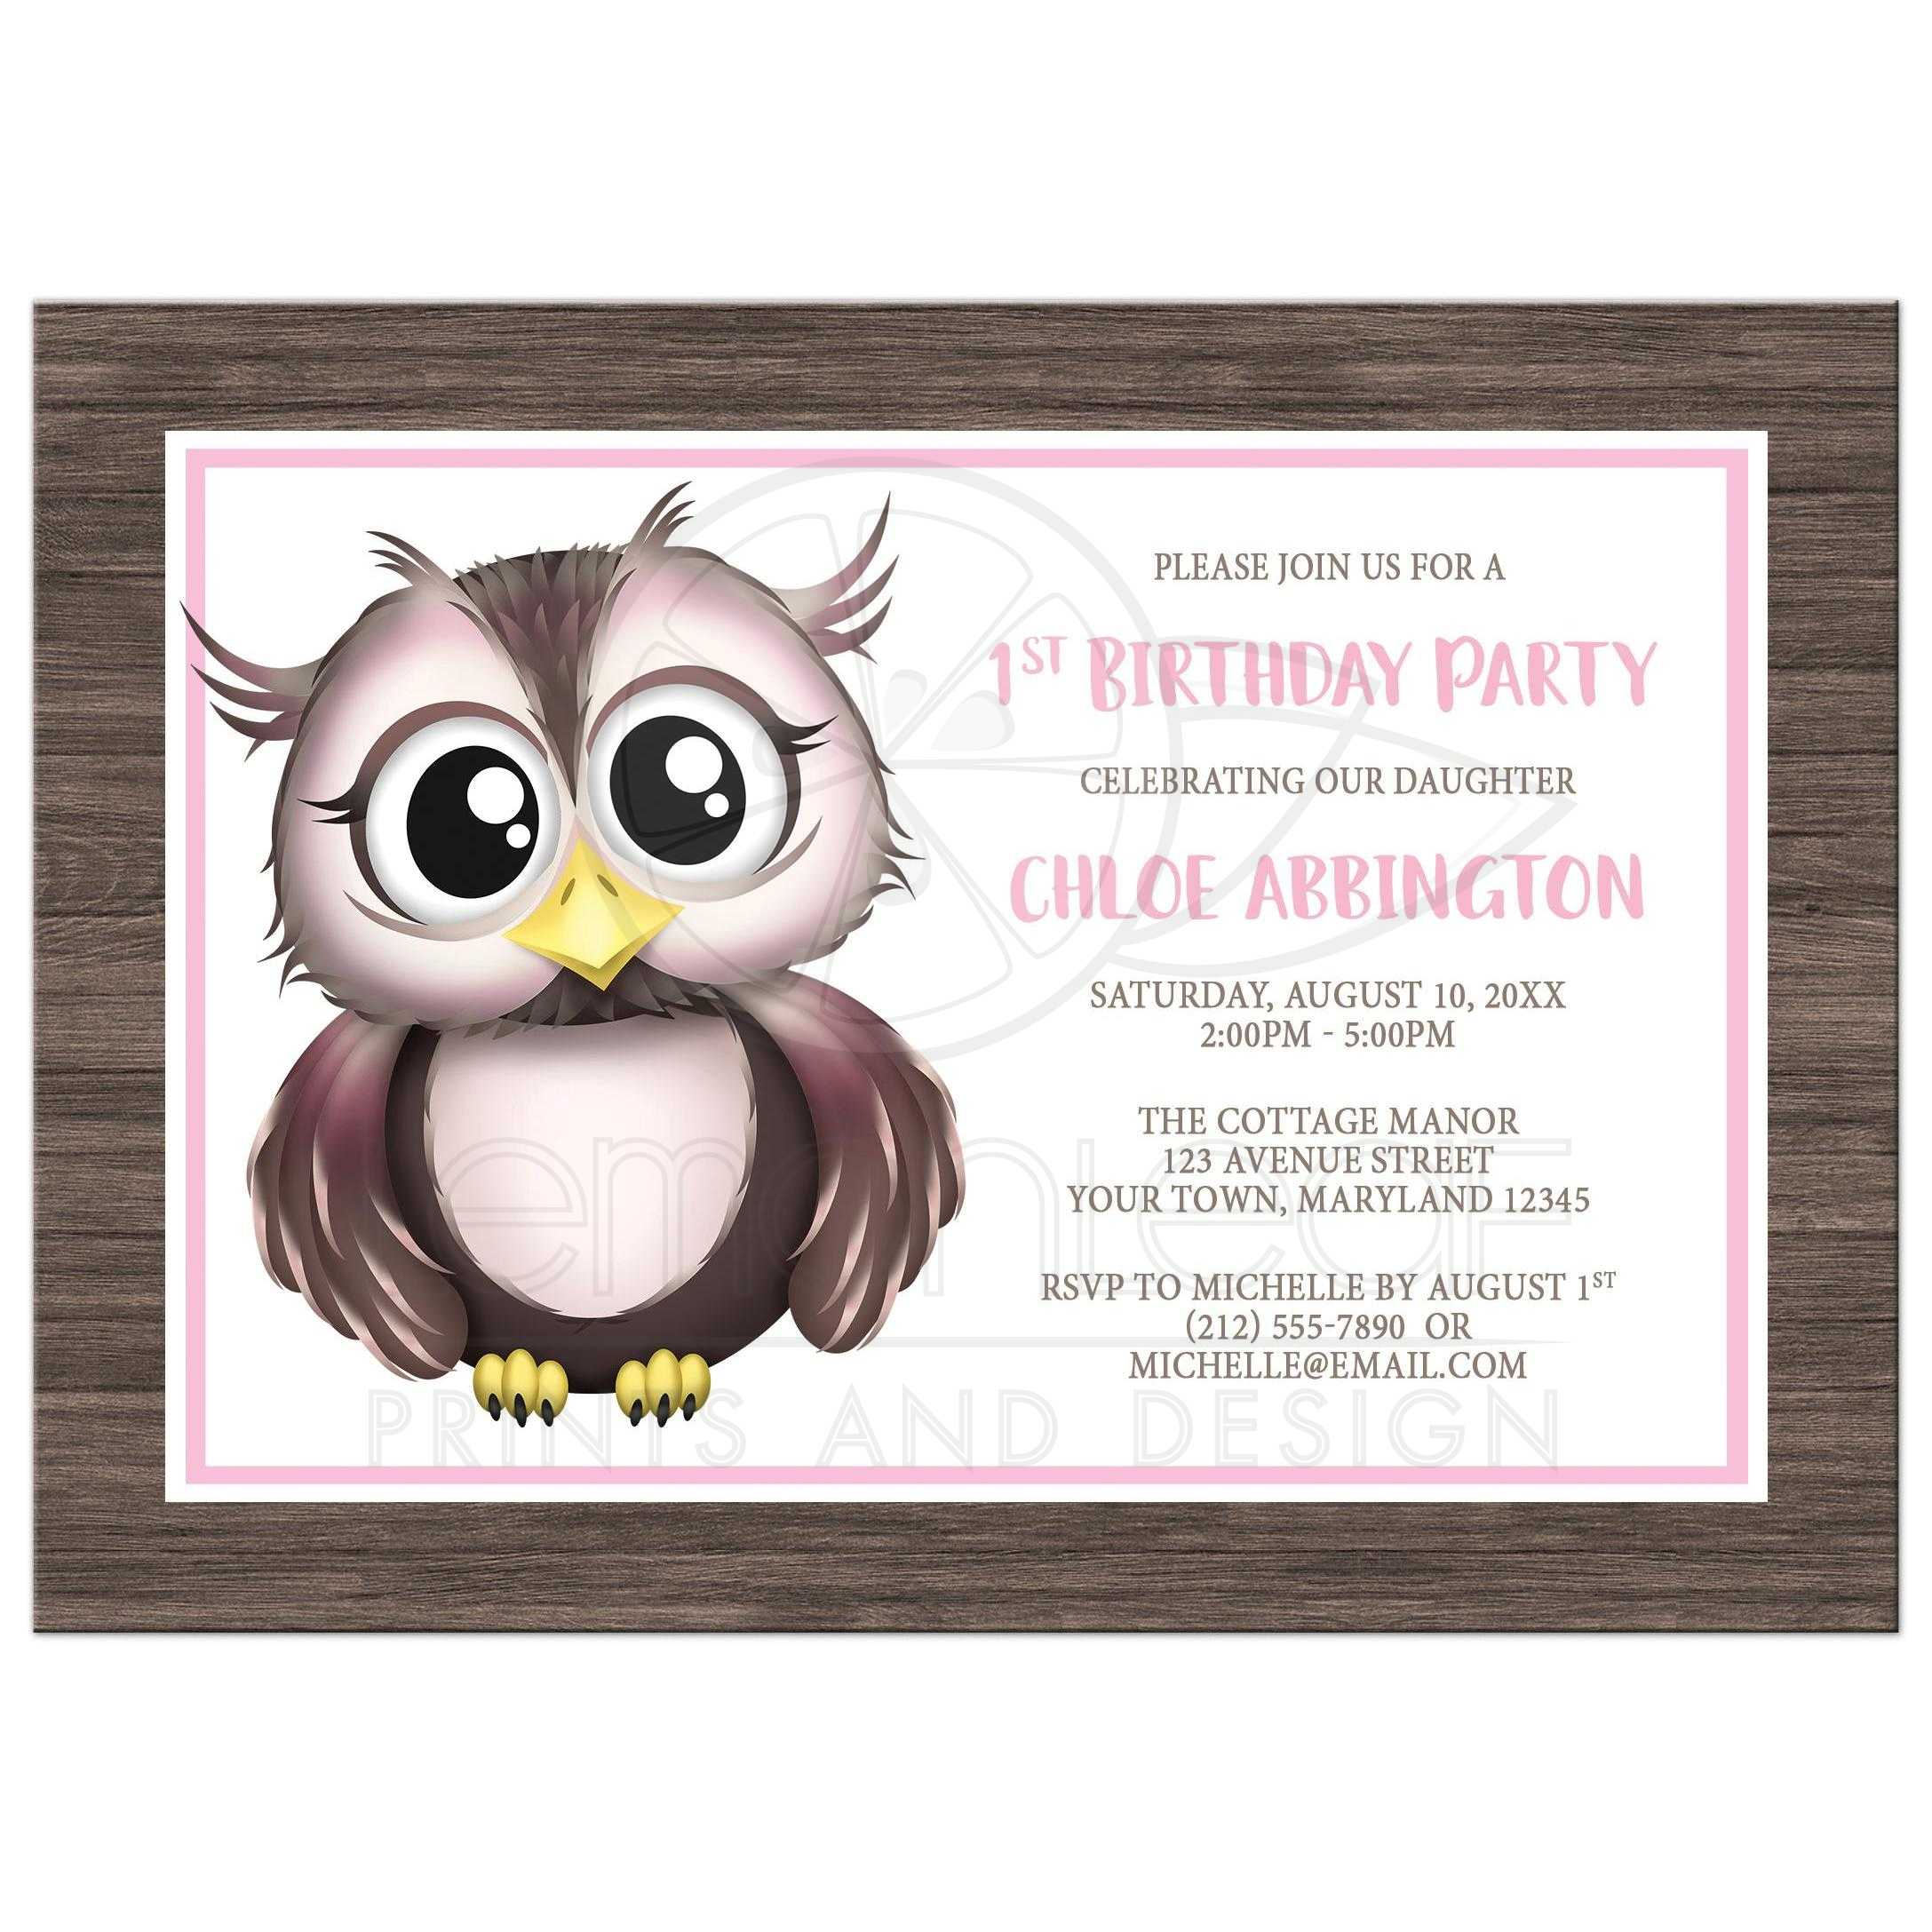 48288 Rectangle Adorable Pink And Brown Owl Birthday Party Invitations2 Jpg T 1500488136